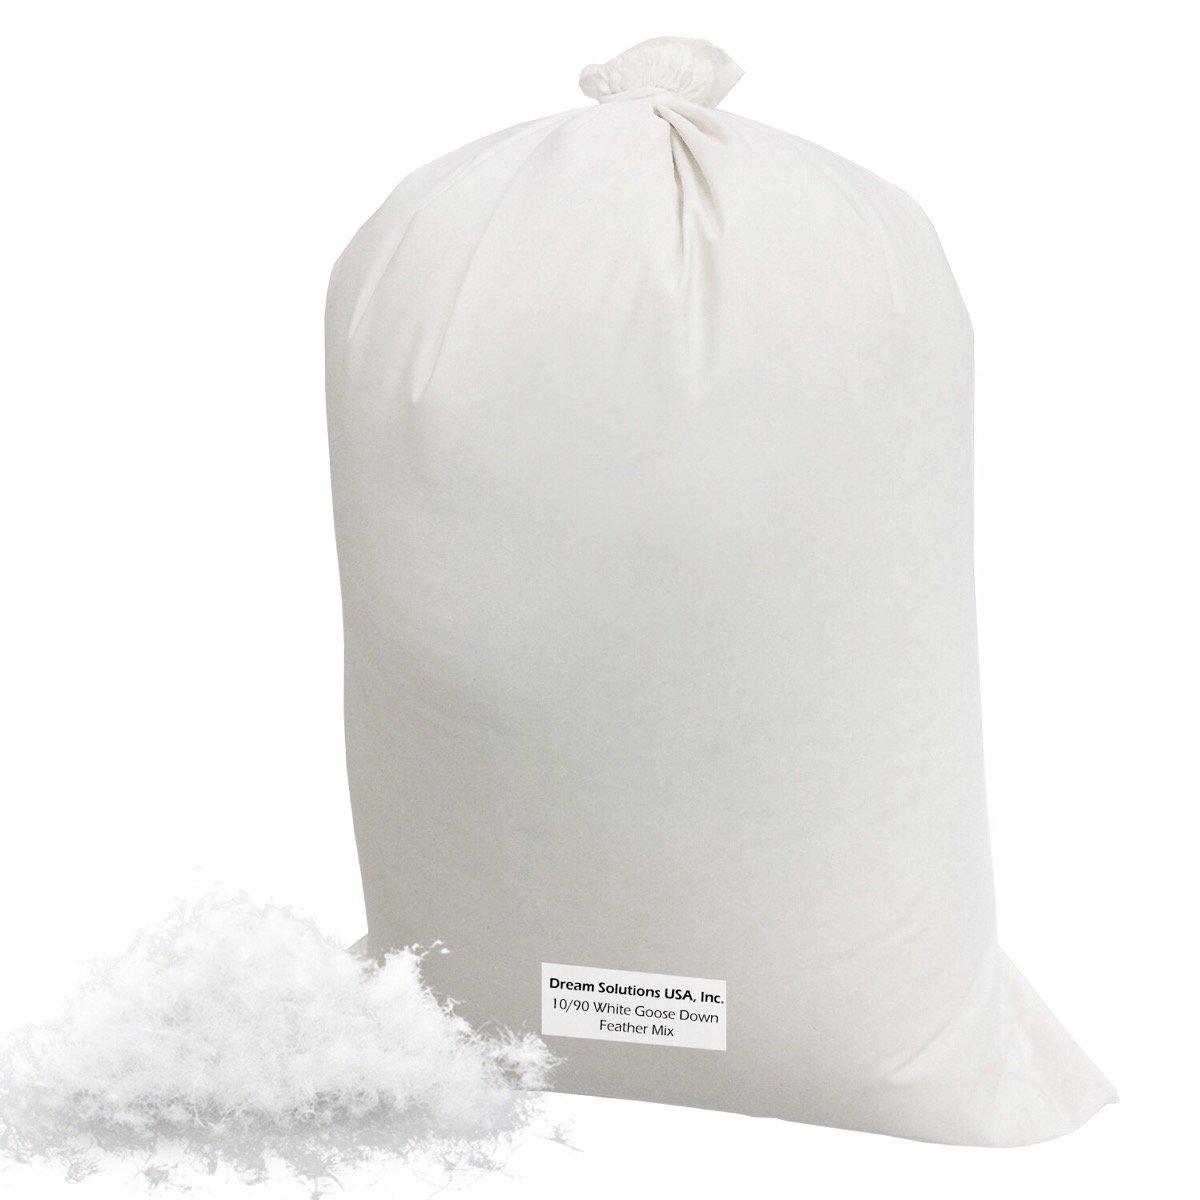 Bulk Goose Down Filling (1 lb.) - 10/90 100% Natural White Down and Feather - Fill Stuffing Comforters, Pillows, Jackets and More - Ultra-Plush Hungarian Softness - Dream Solutions USA Brand by Dream Solutions USA